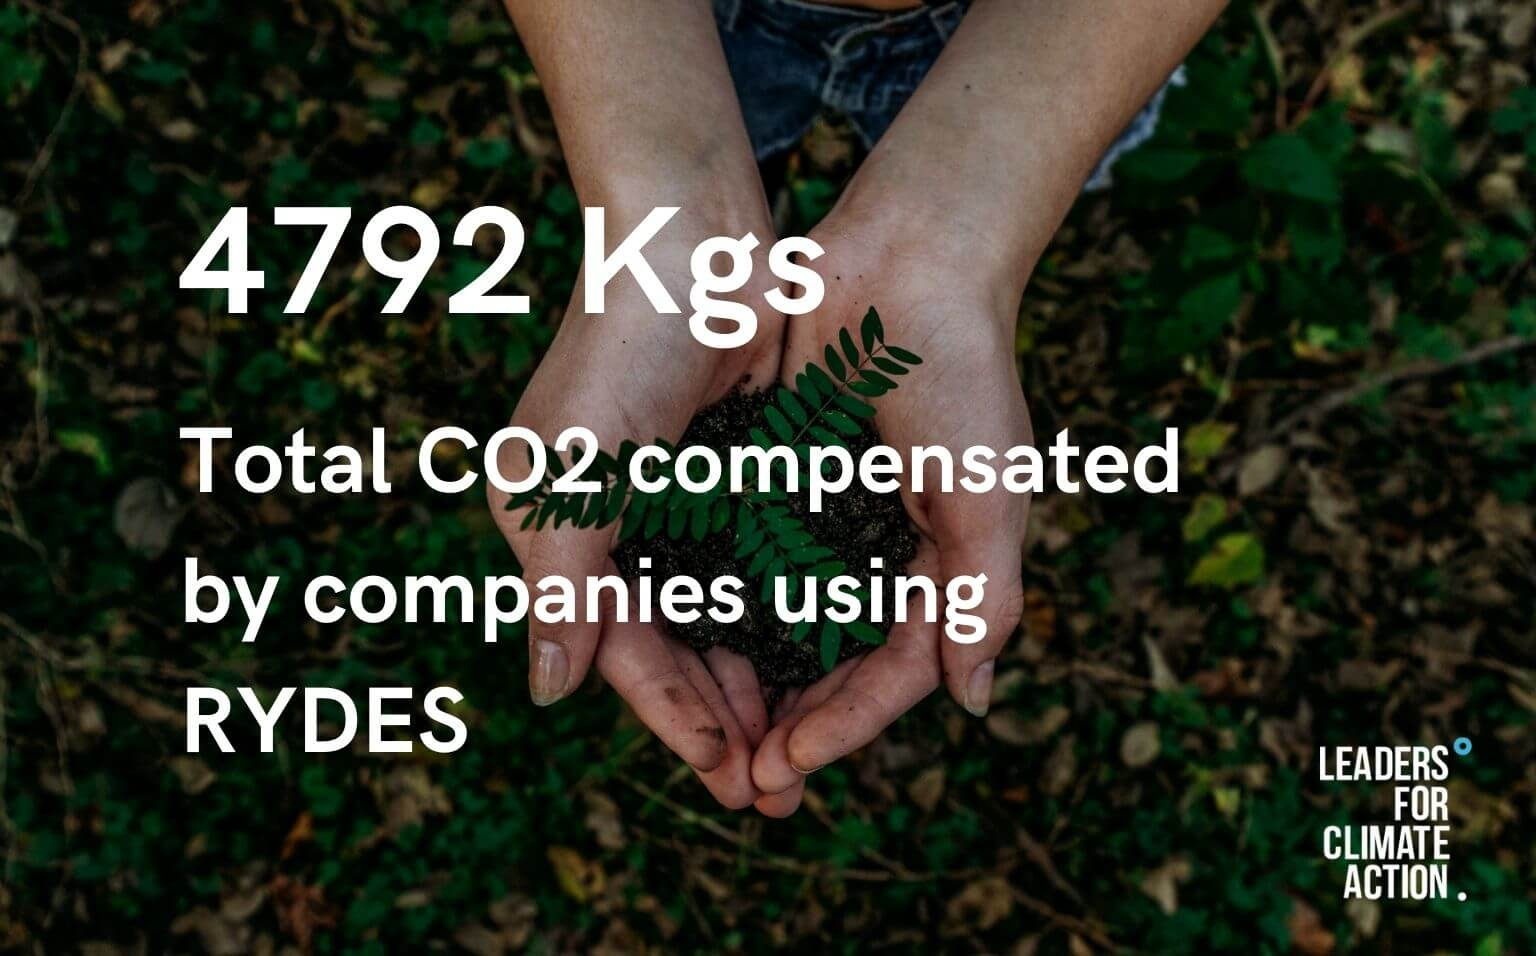 Total CO2 compensated by companies using RYDES